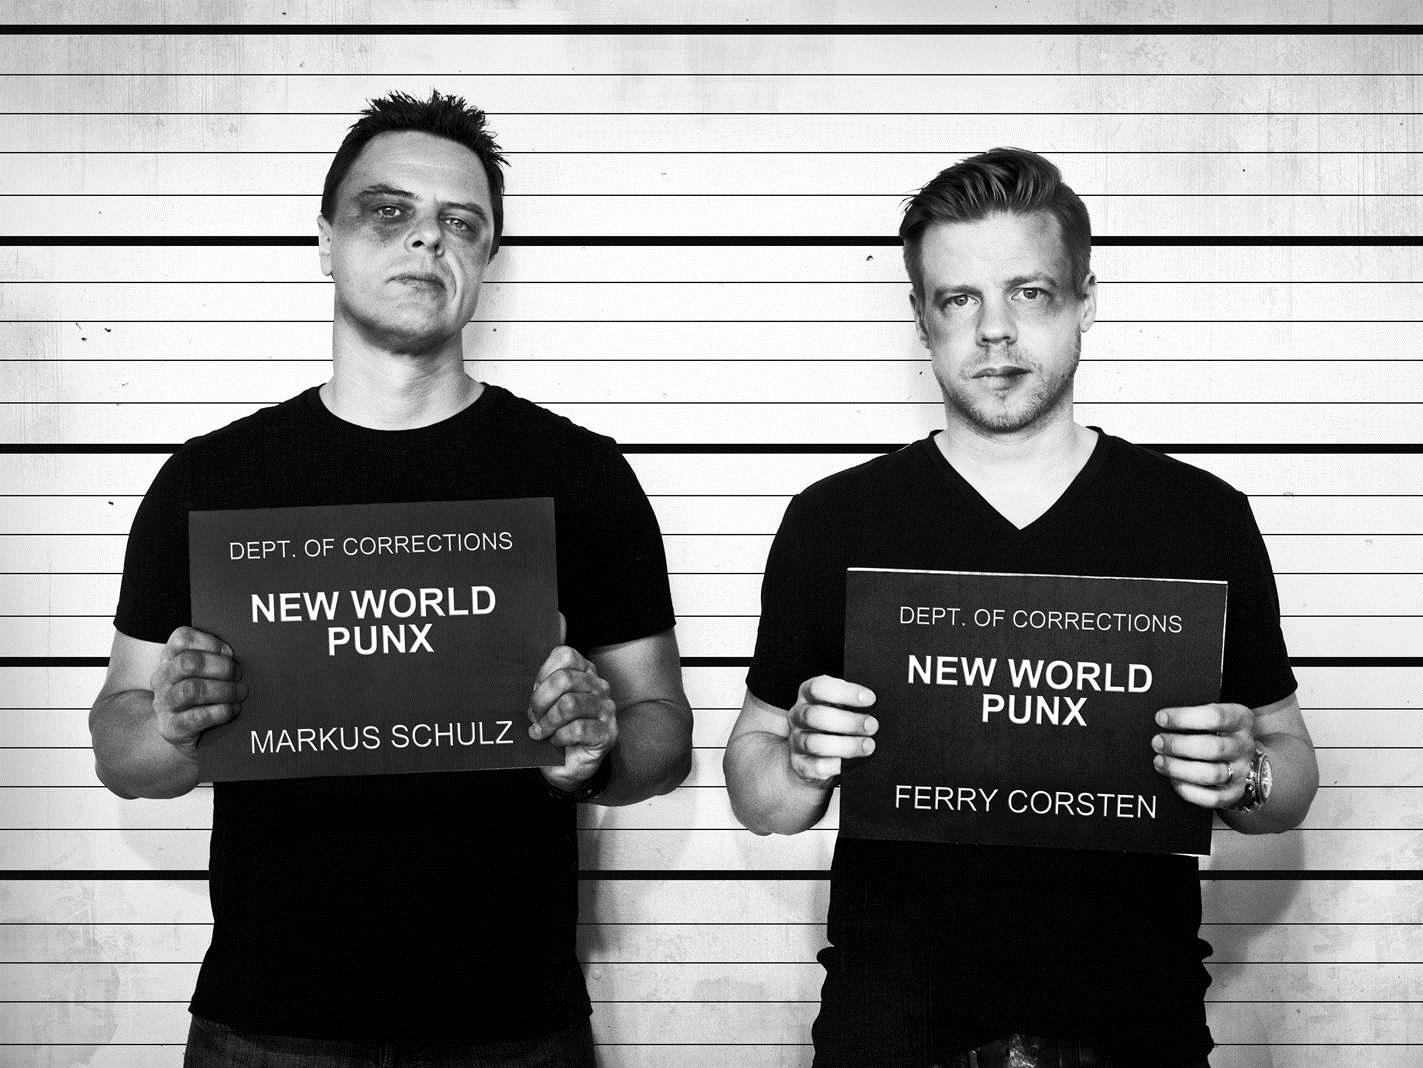 New World Punx. We assure you they did not receive those black eyes in Vegas. Photo courtesy of Foxtail Pool Club and New World Punx.